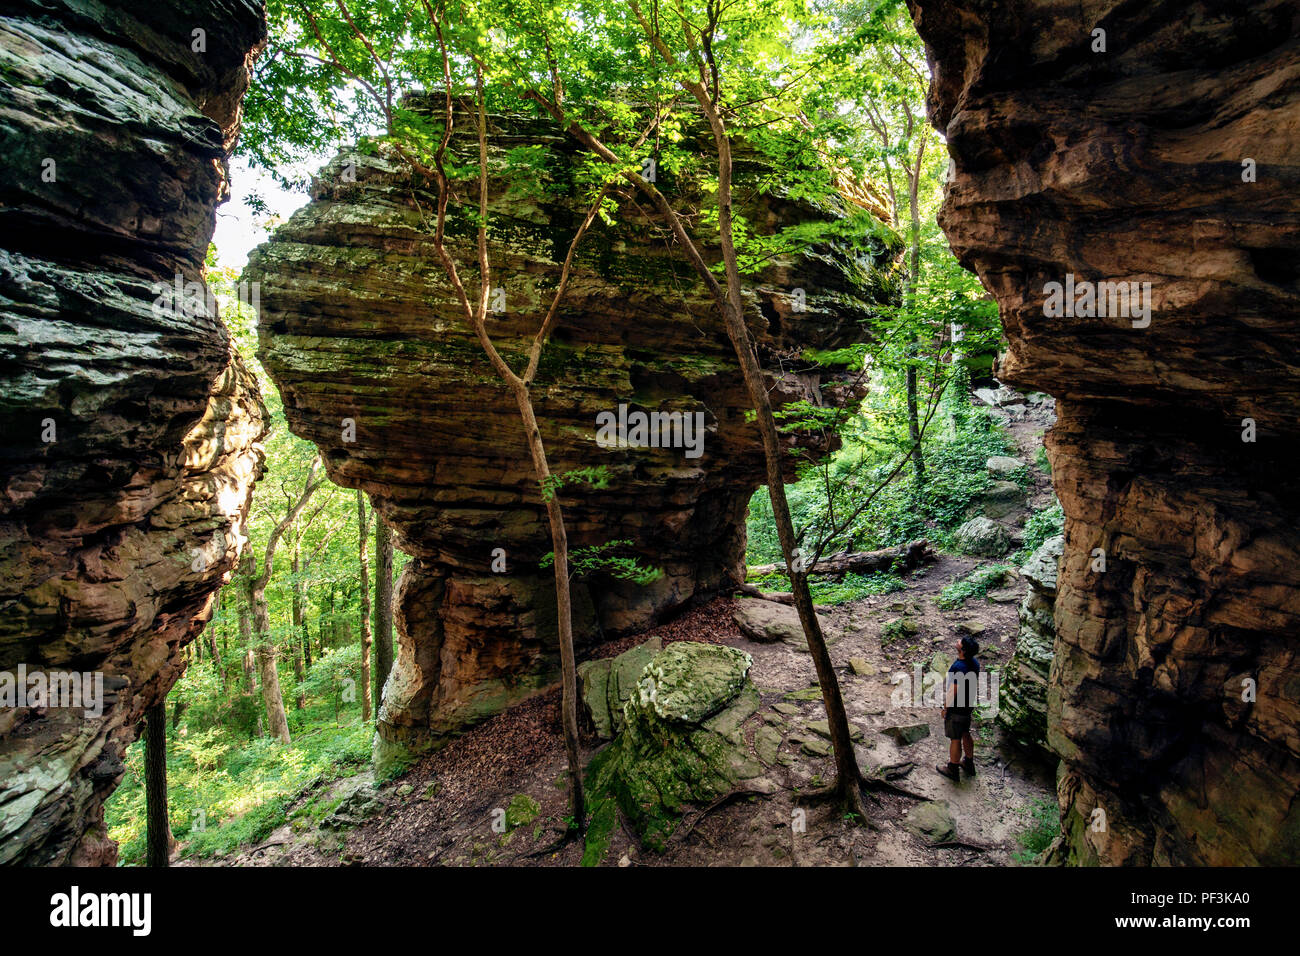 Person standing near massive sandstone rock formation - Indian Point Trail - Garden of the Gods, Shawnee National Forest, Illinois, USA - Stock Image